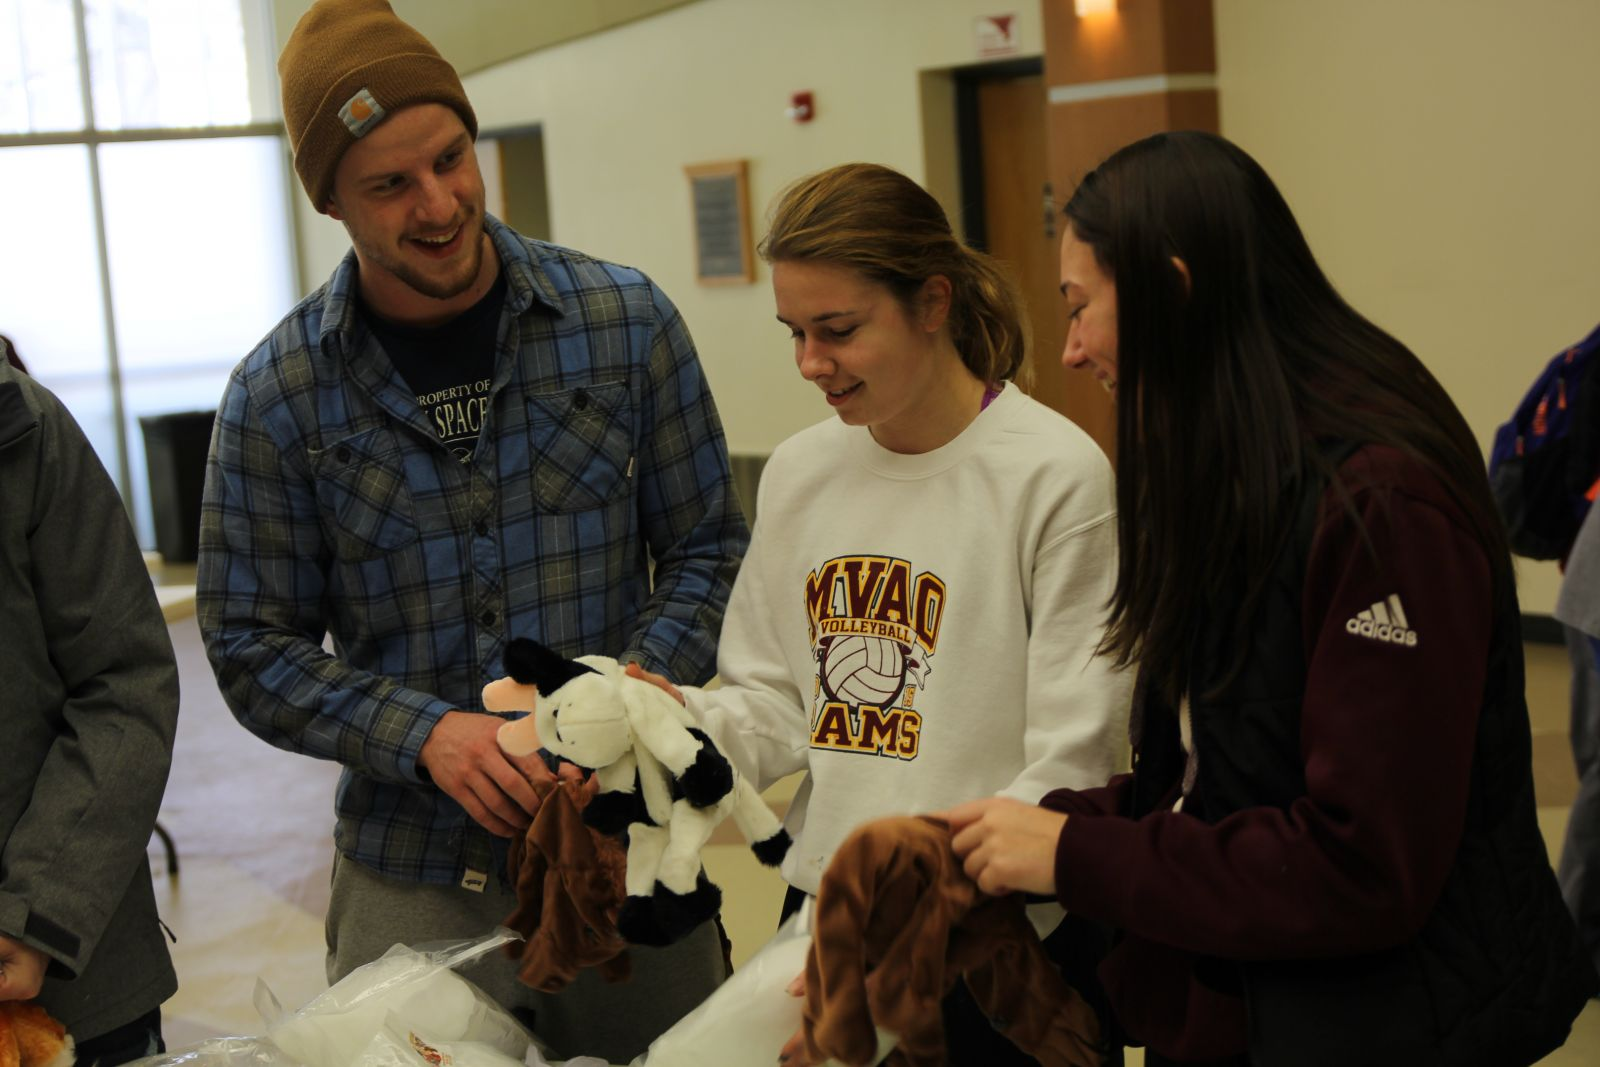 students stuffed with a stuffed cow